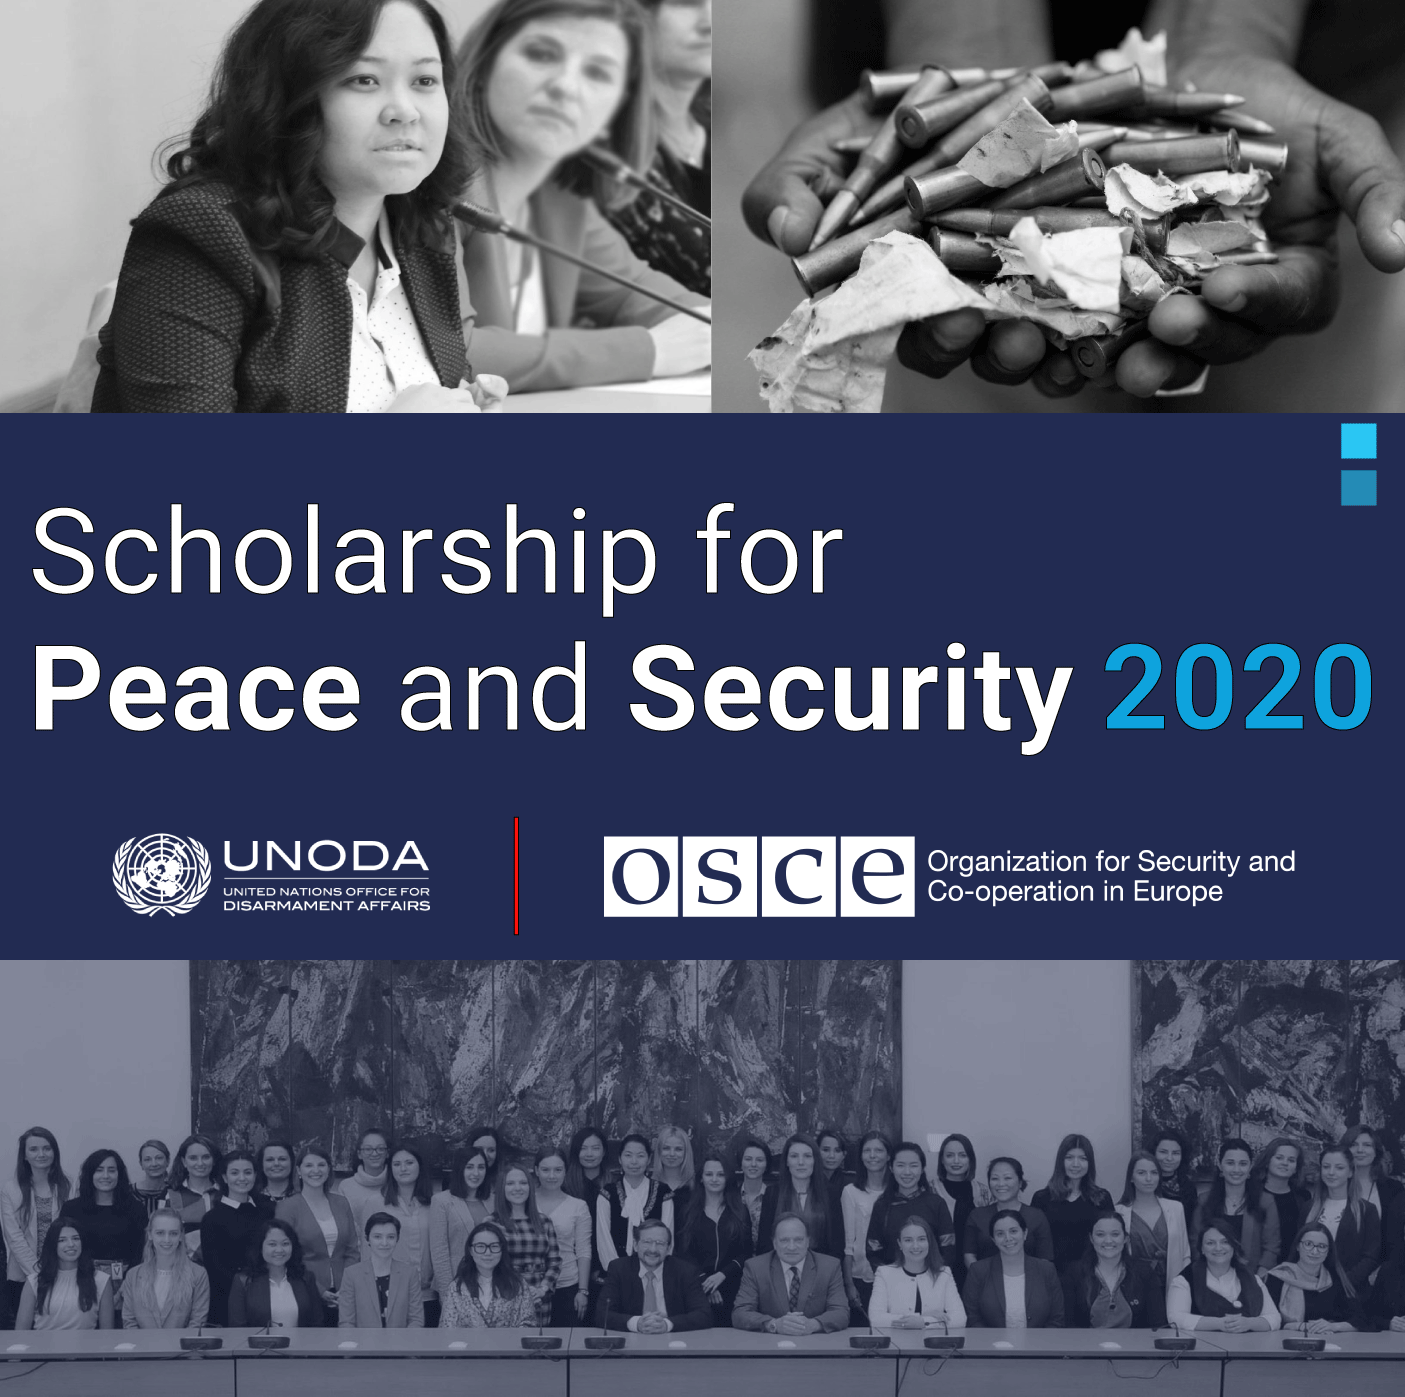 Scholarship for Peace and Security